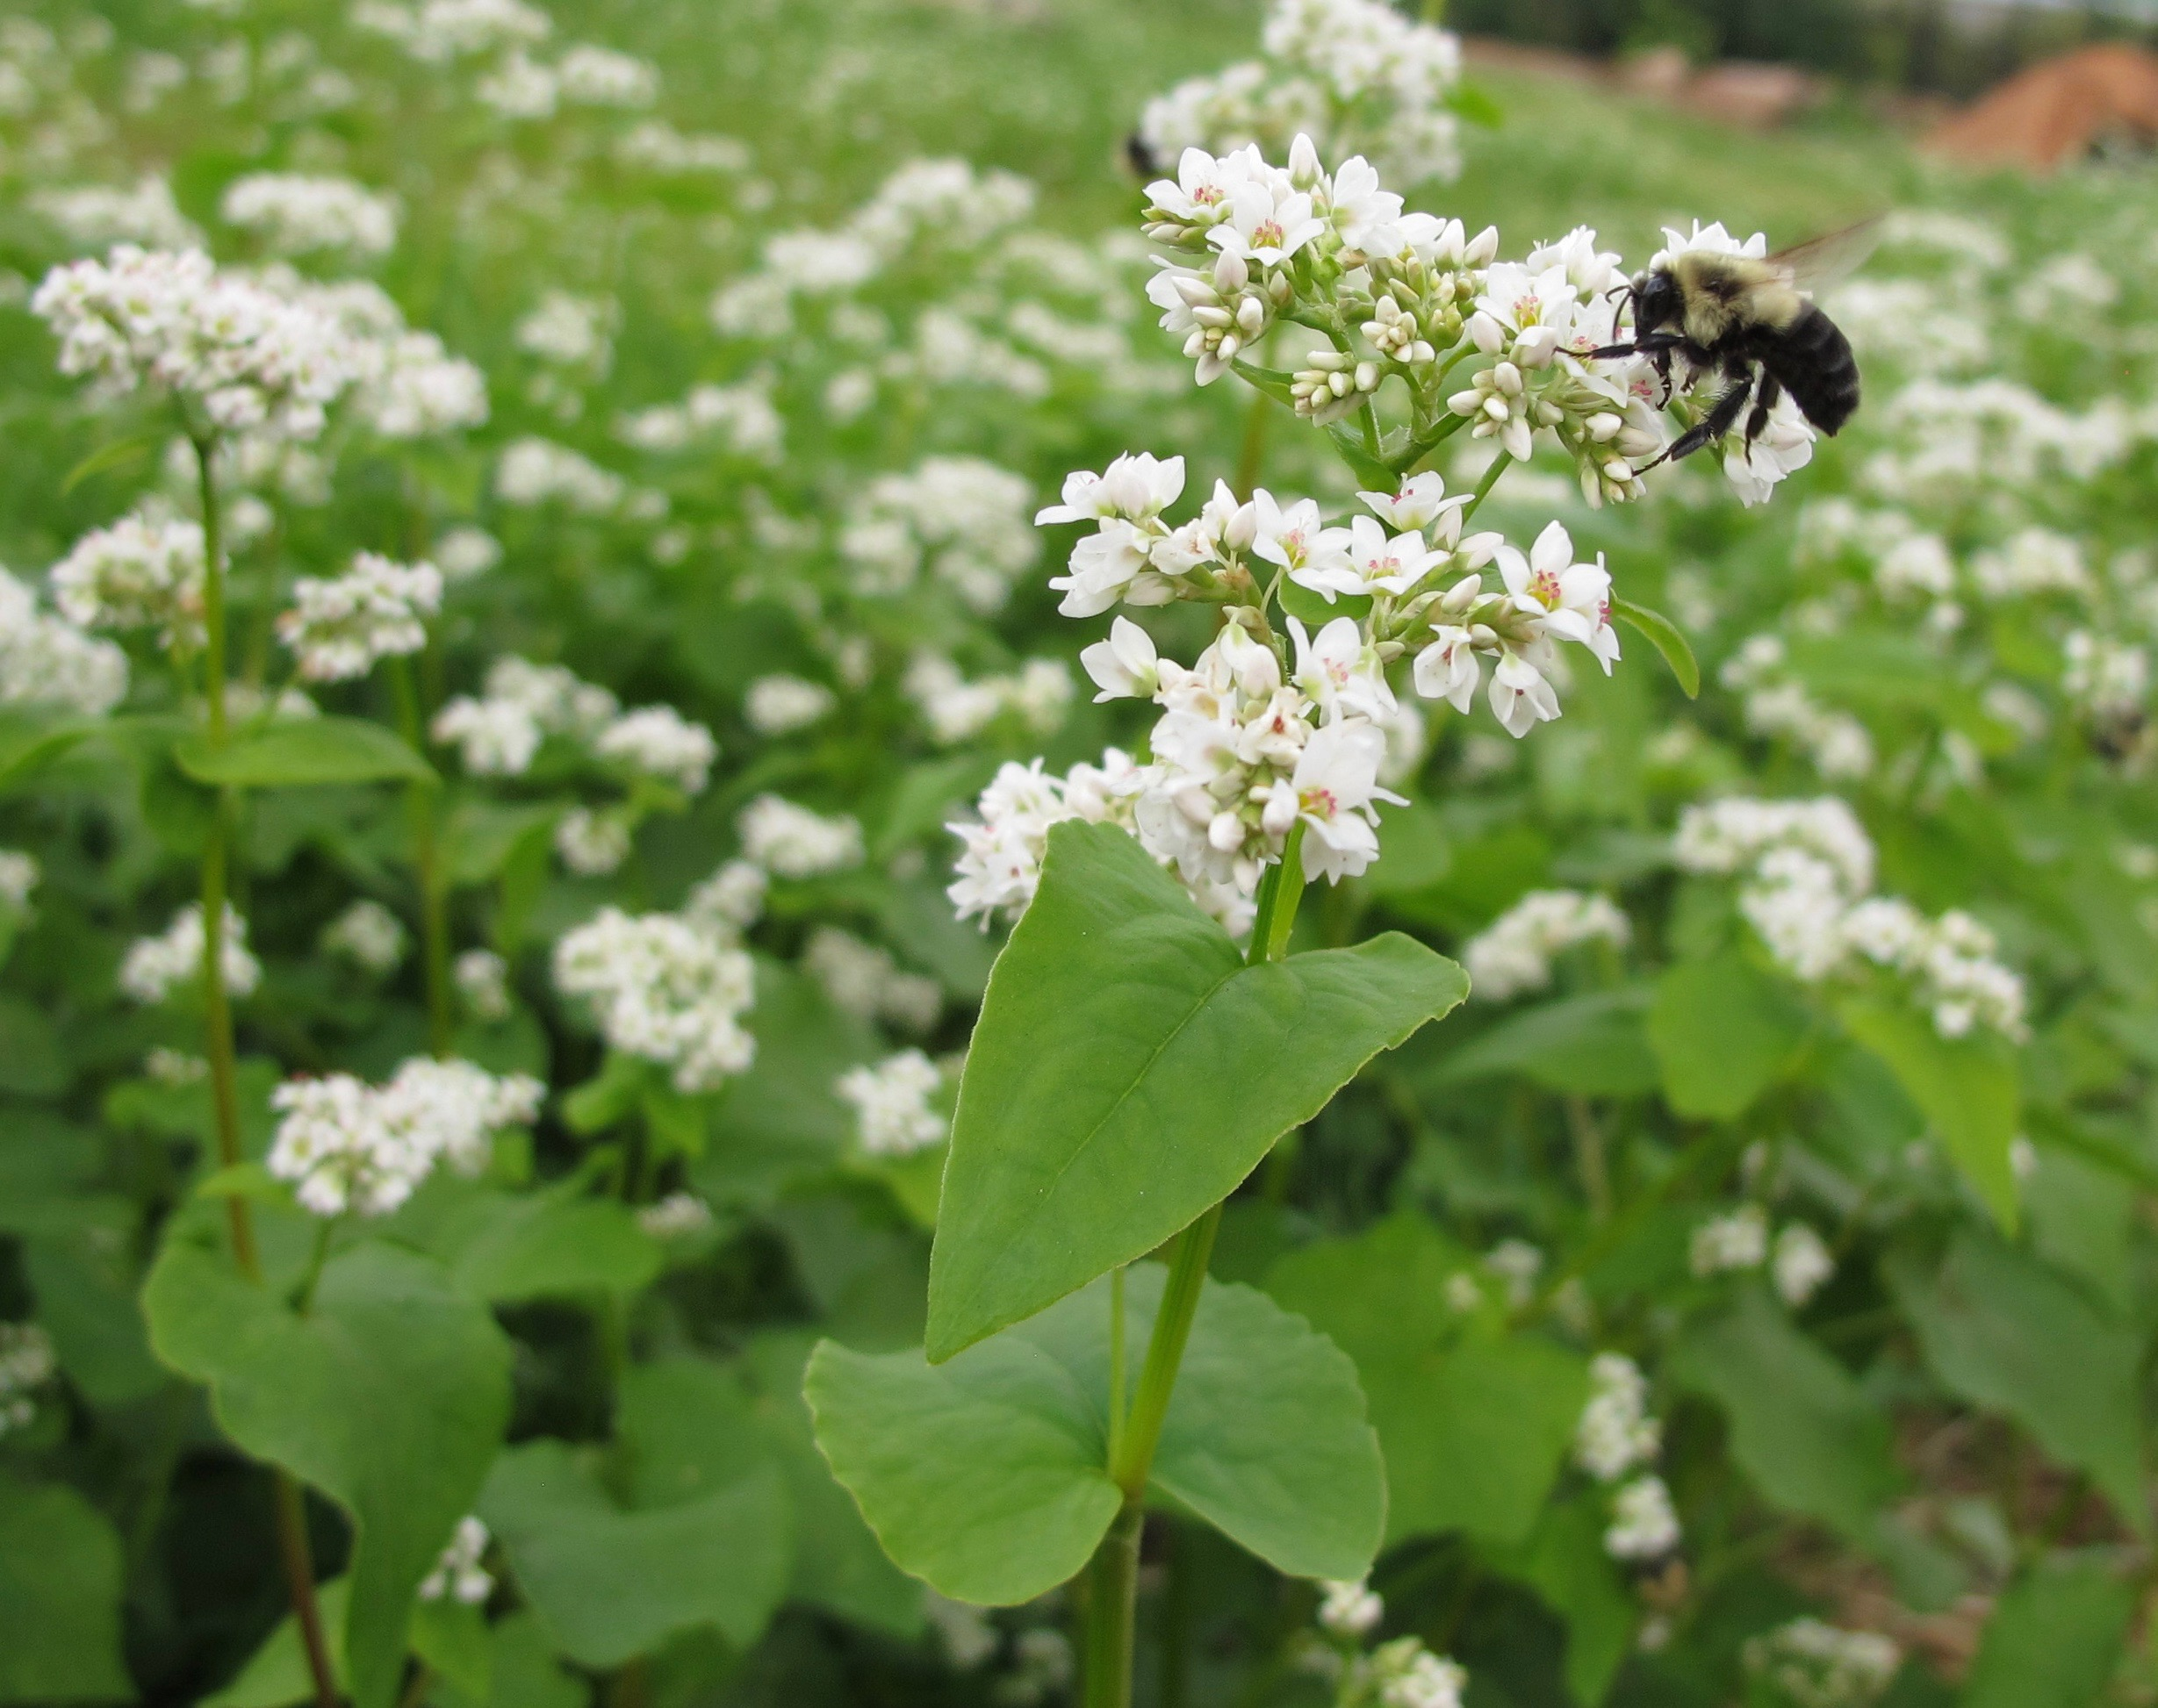 Buckwheat is an unusually fast-growing plant produced by commercial agriculture for its grain-like seeds. In the home garden, it is one of the best summer cover/green manure crops available.